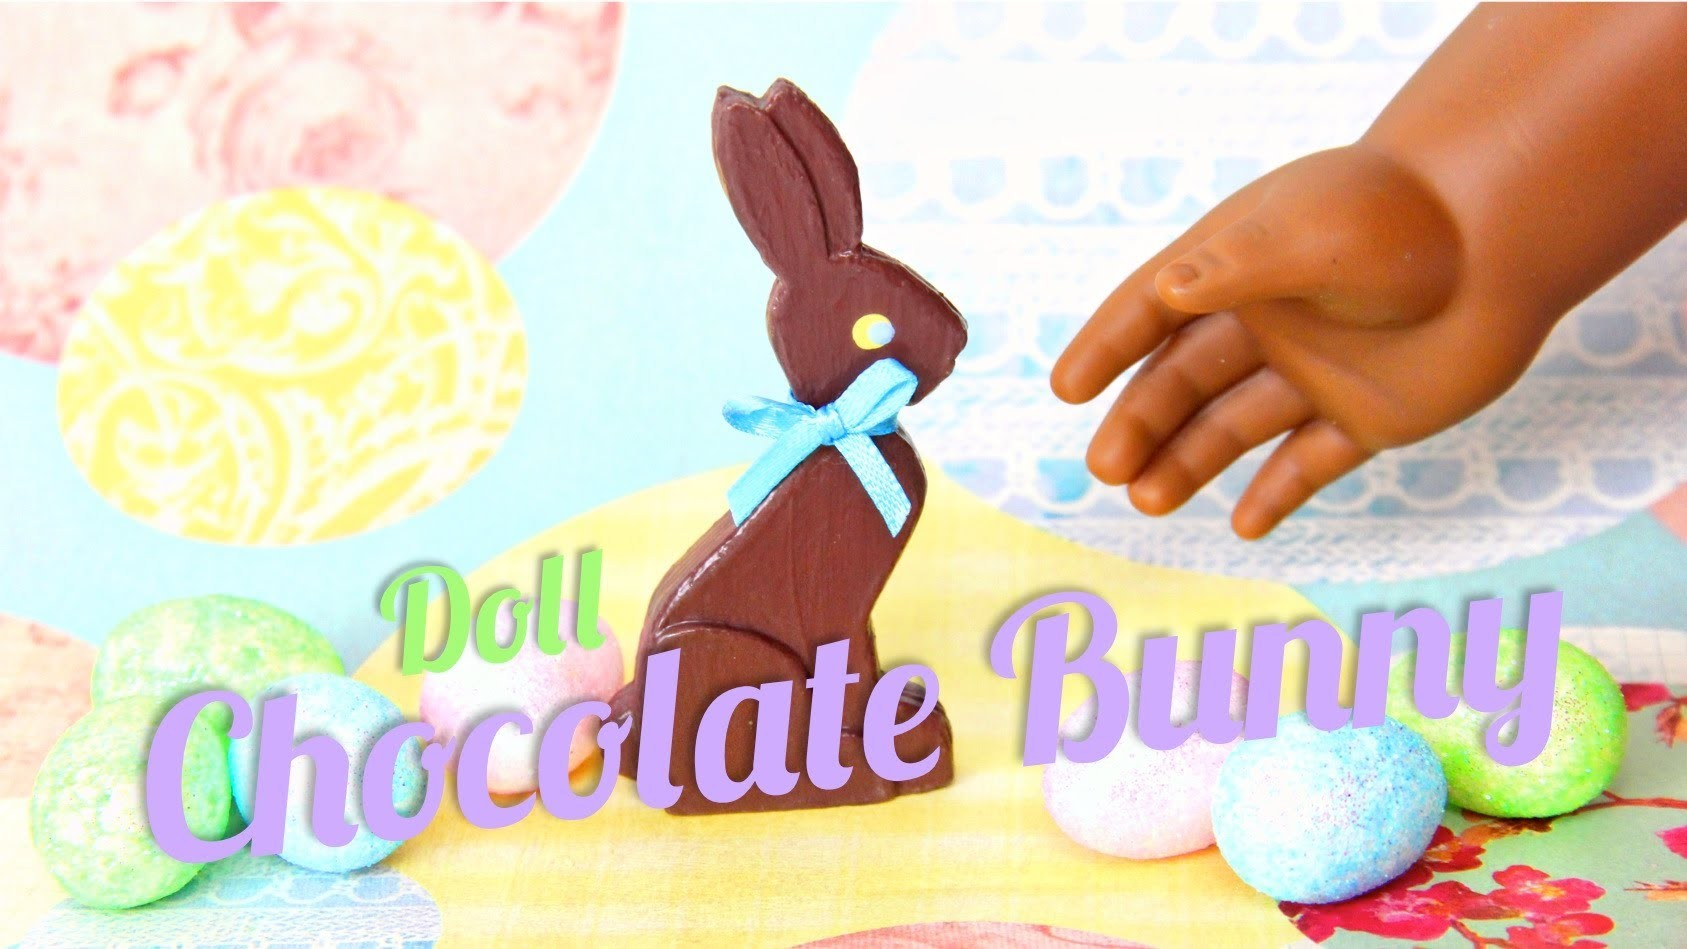 How to Make Doll Chocolate Bunnies - Doll Crafts